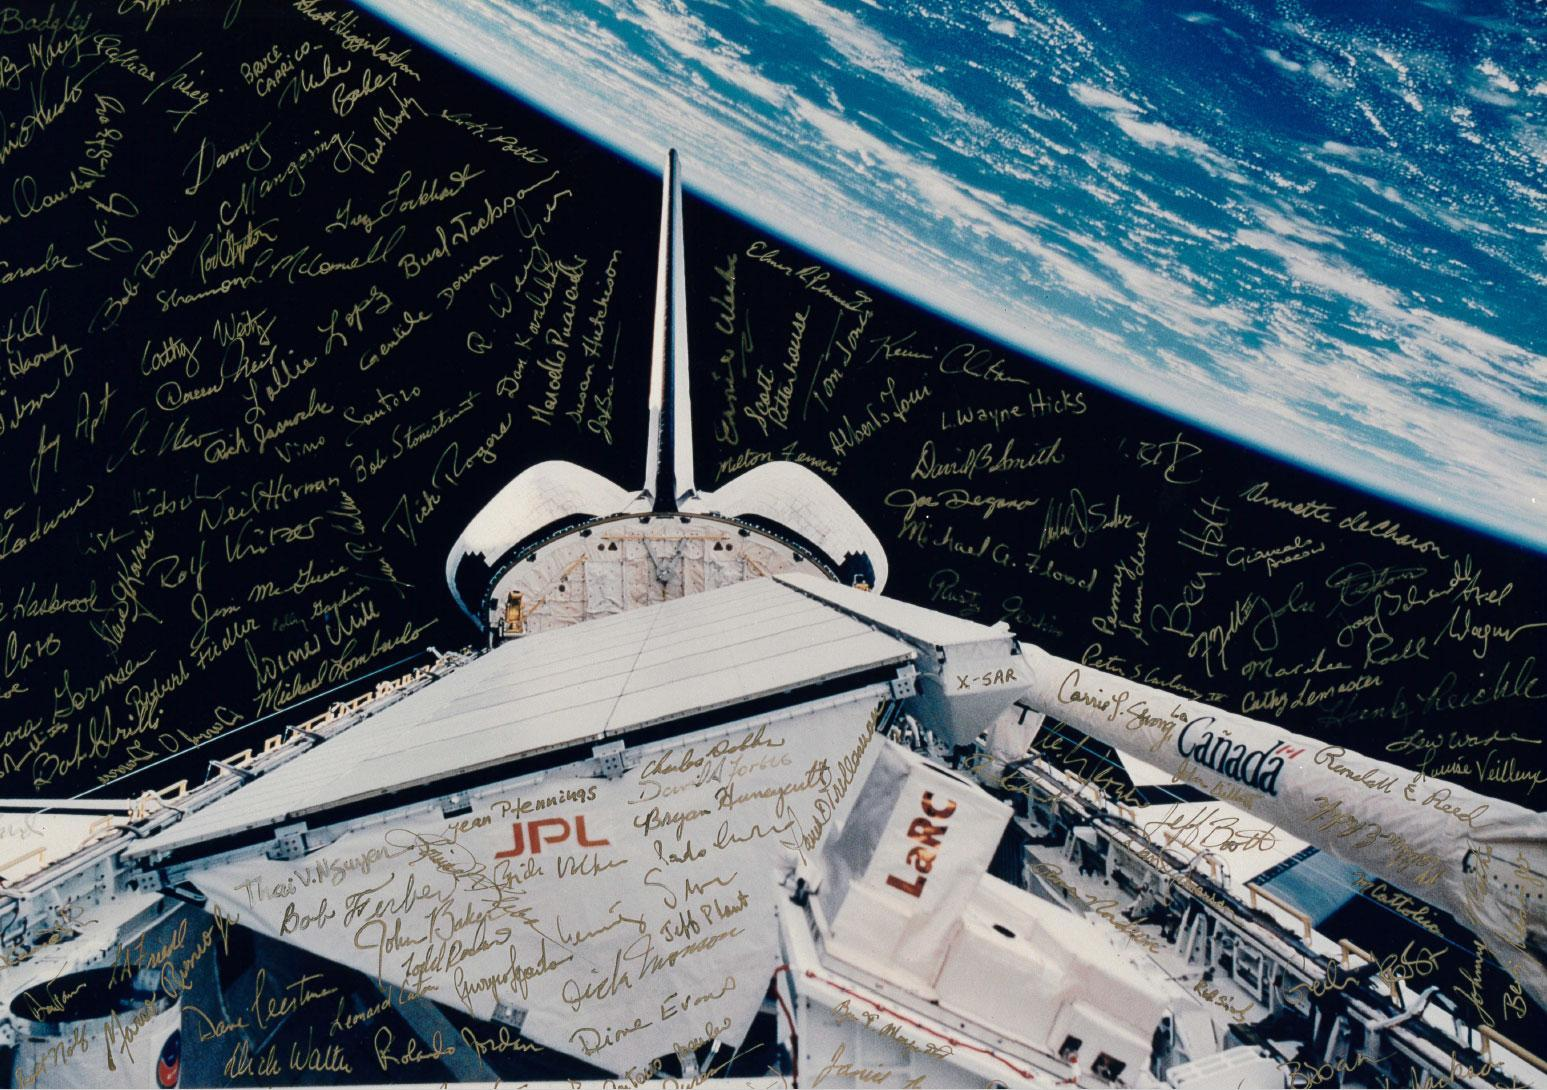 Payload bay of Space Shuttle Endeavour with the signatures of many members of the team